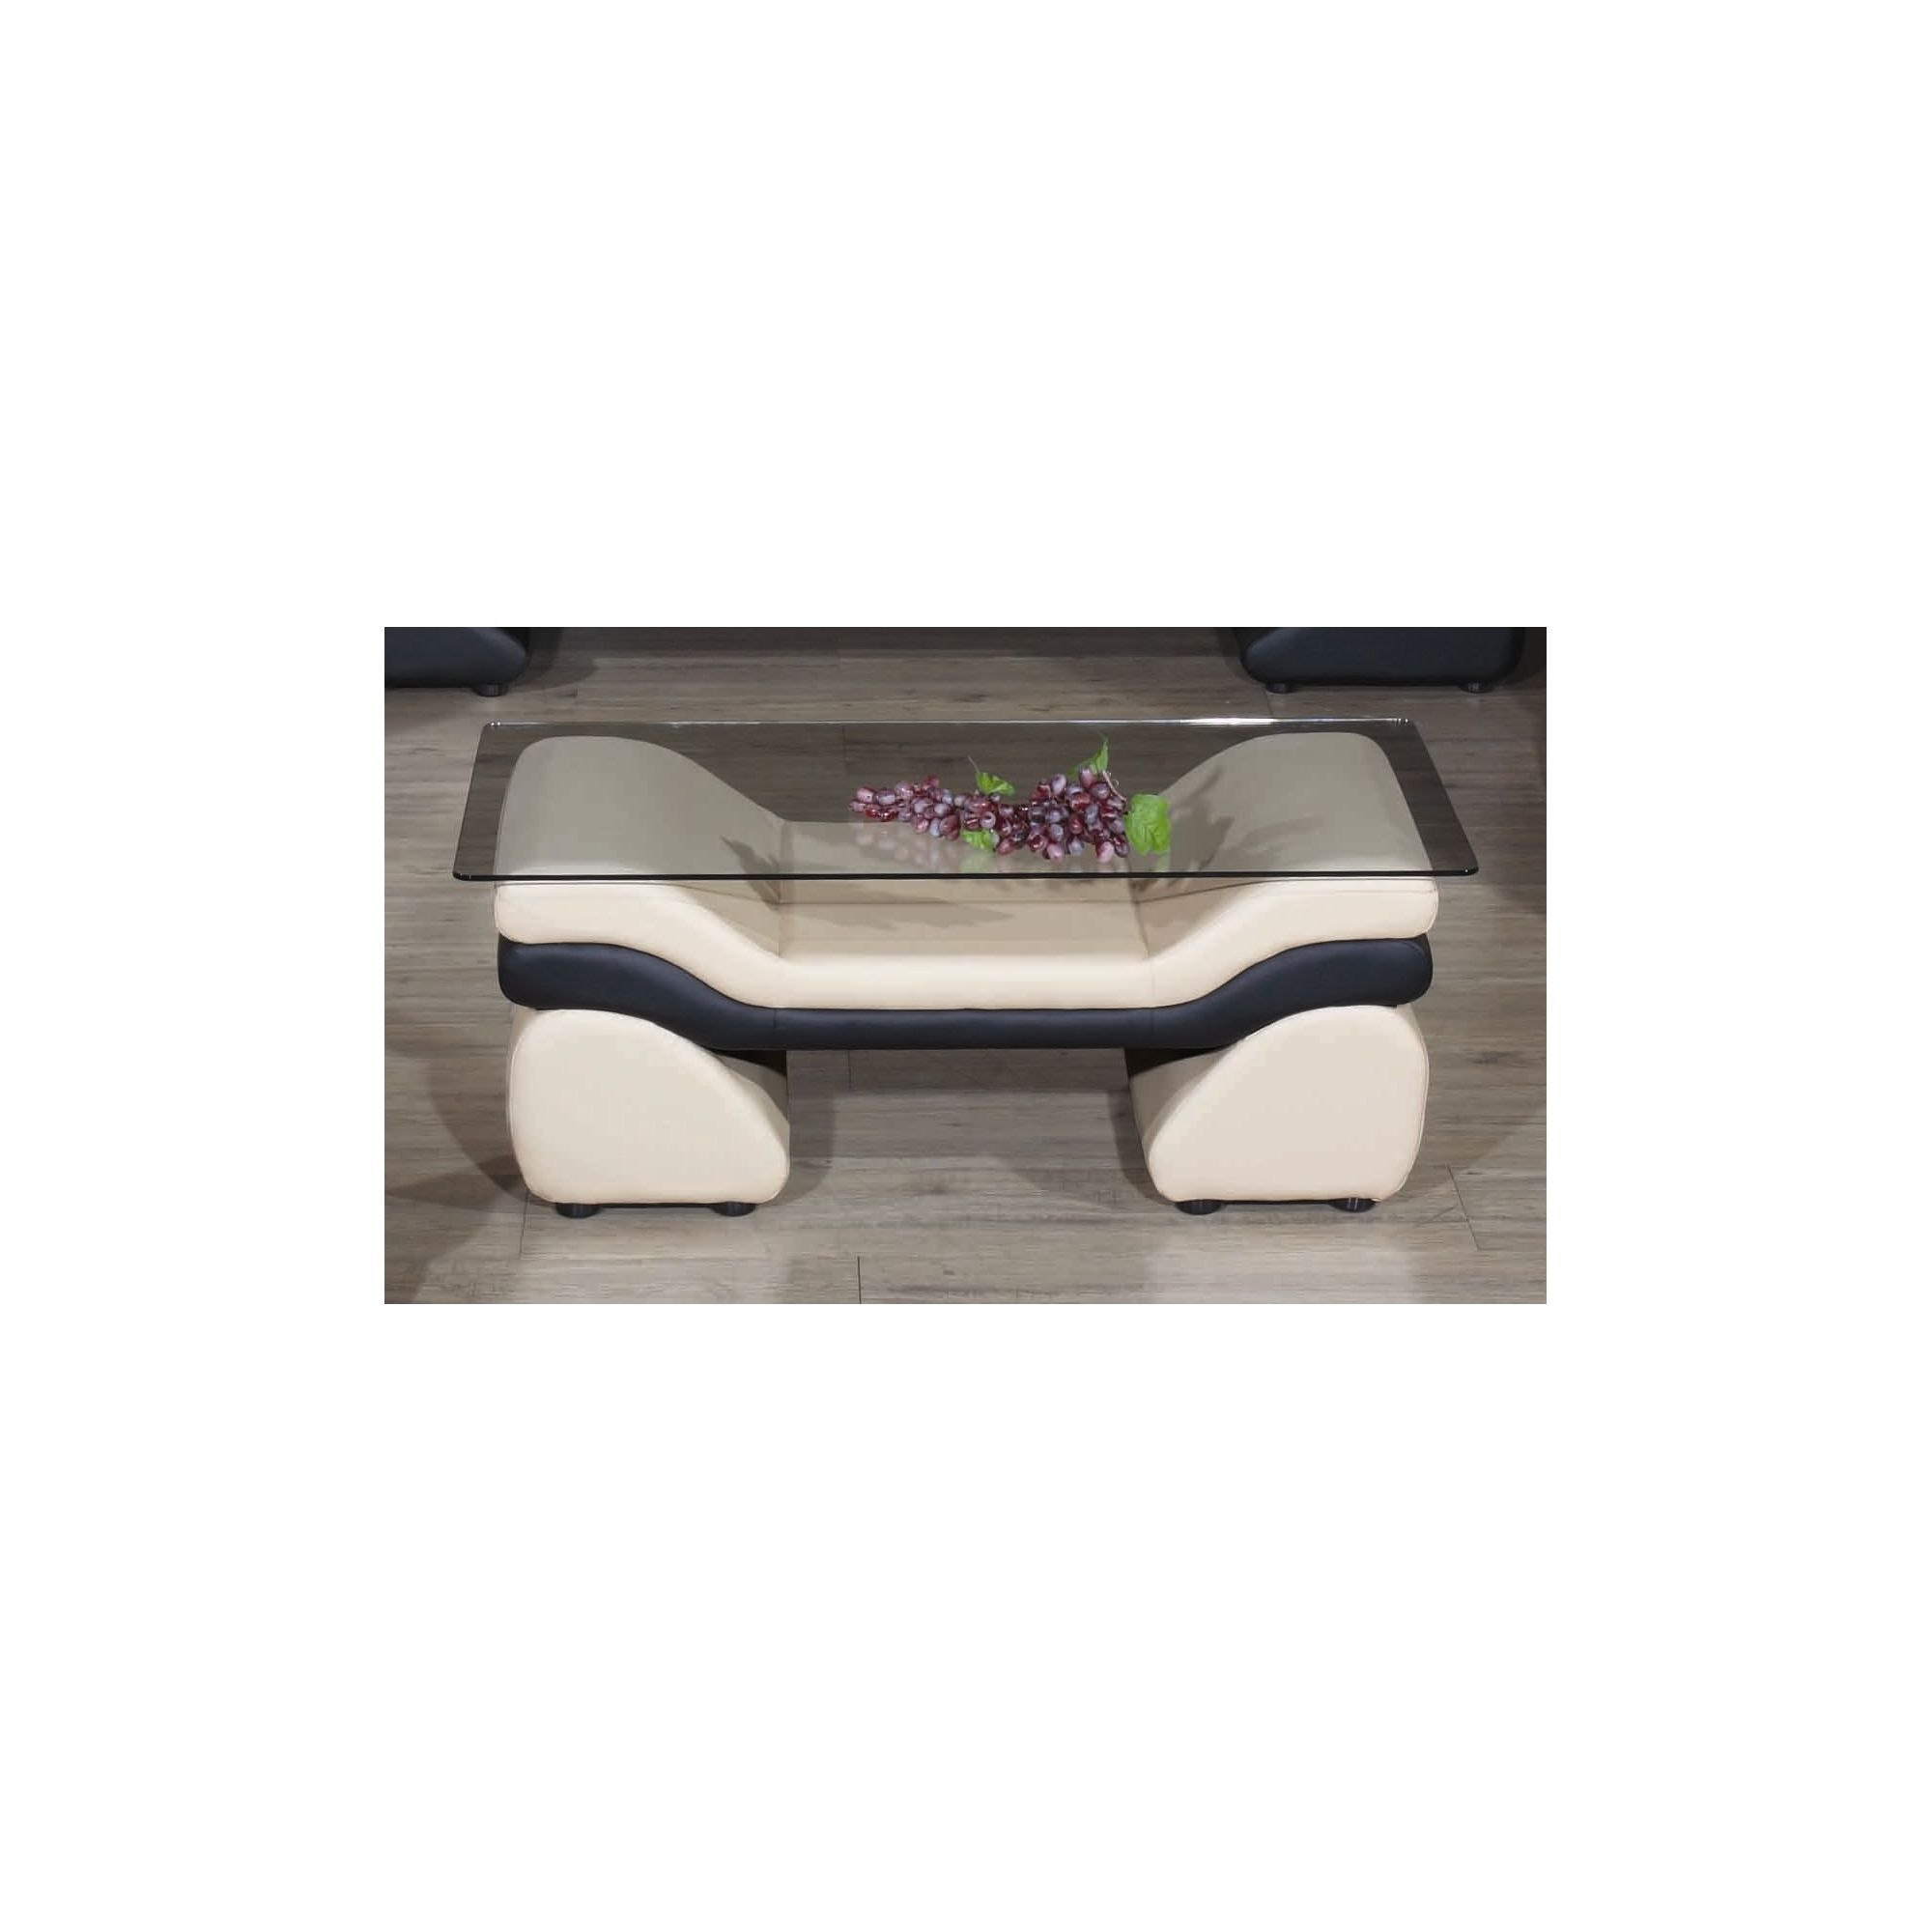 JPL Furniture Miami Coffee Table - Black / White at Tesco Direct